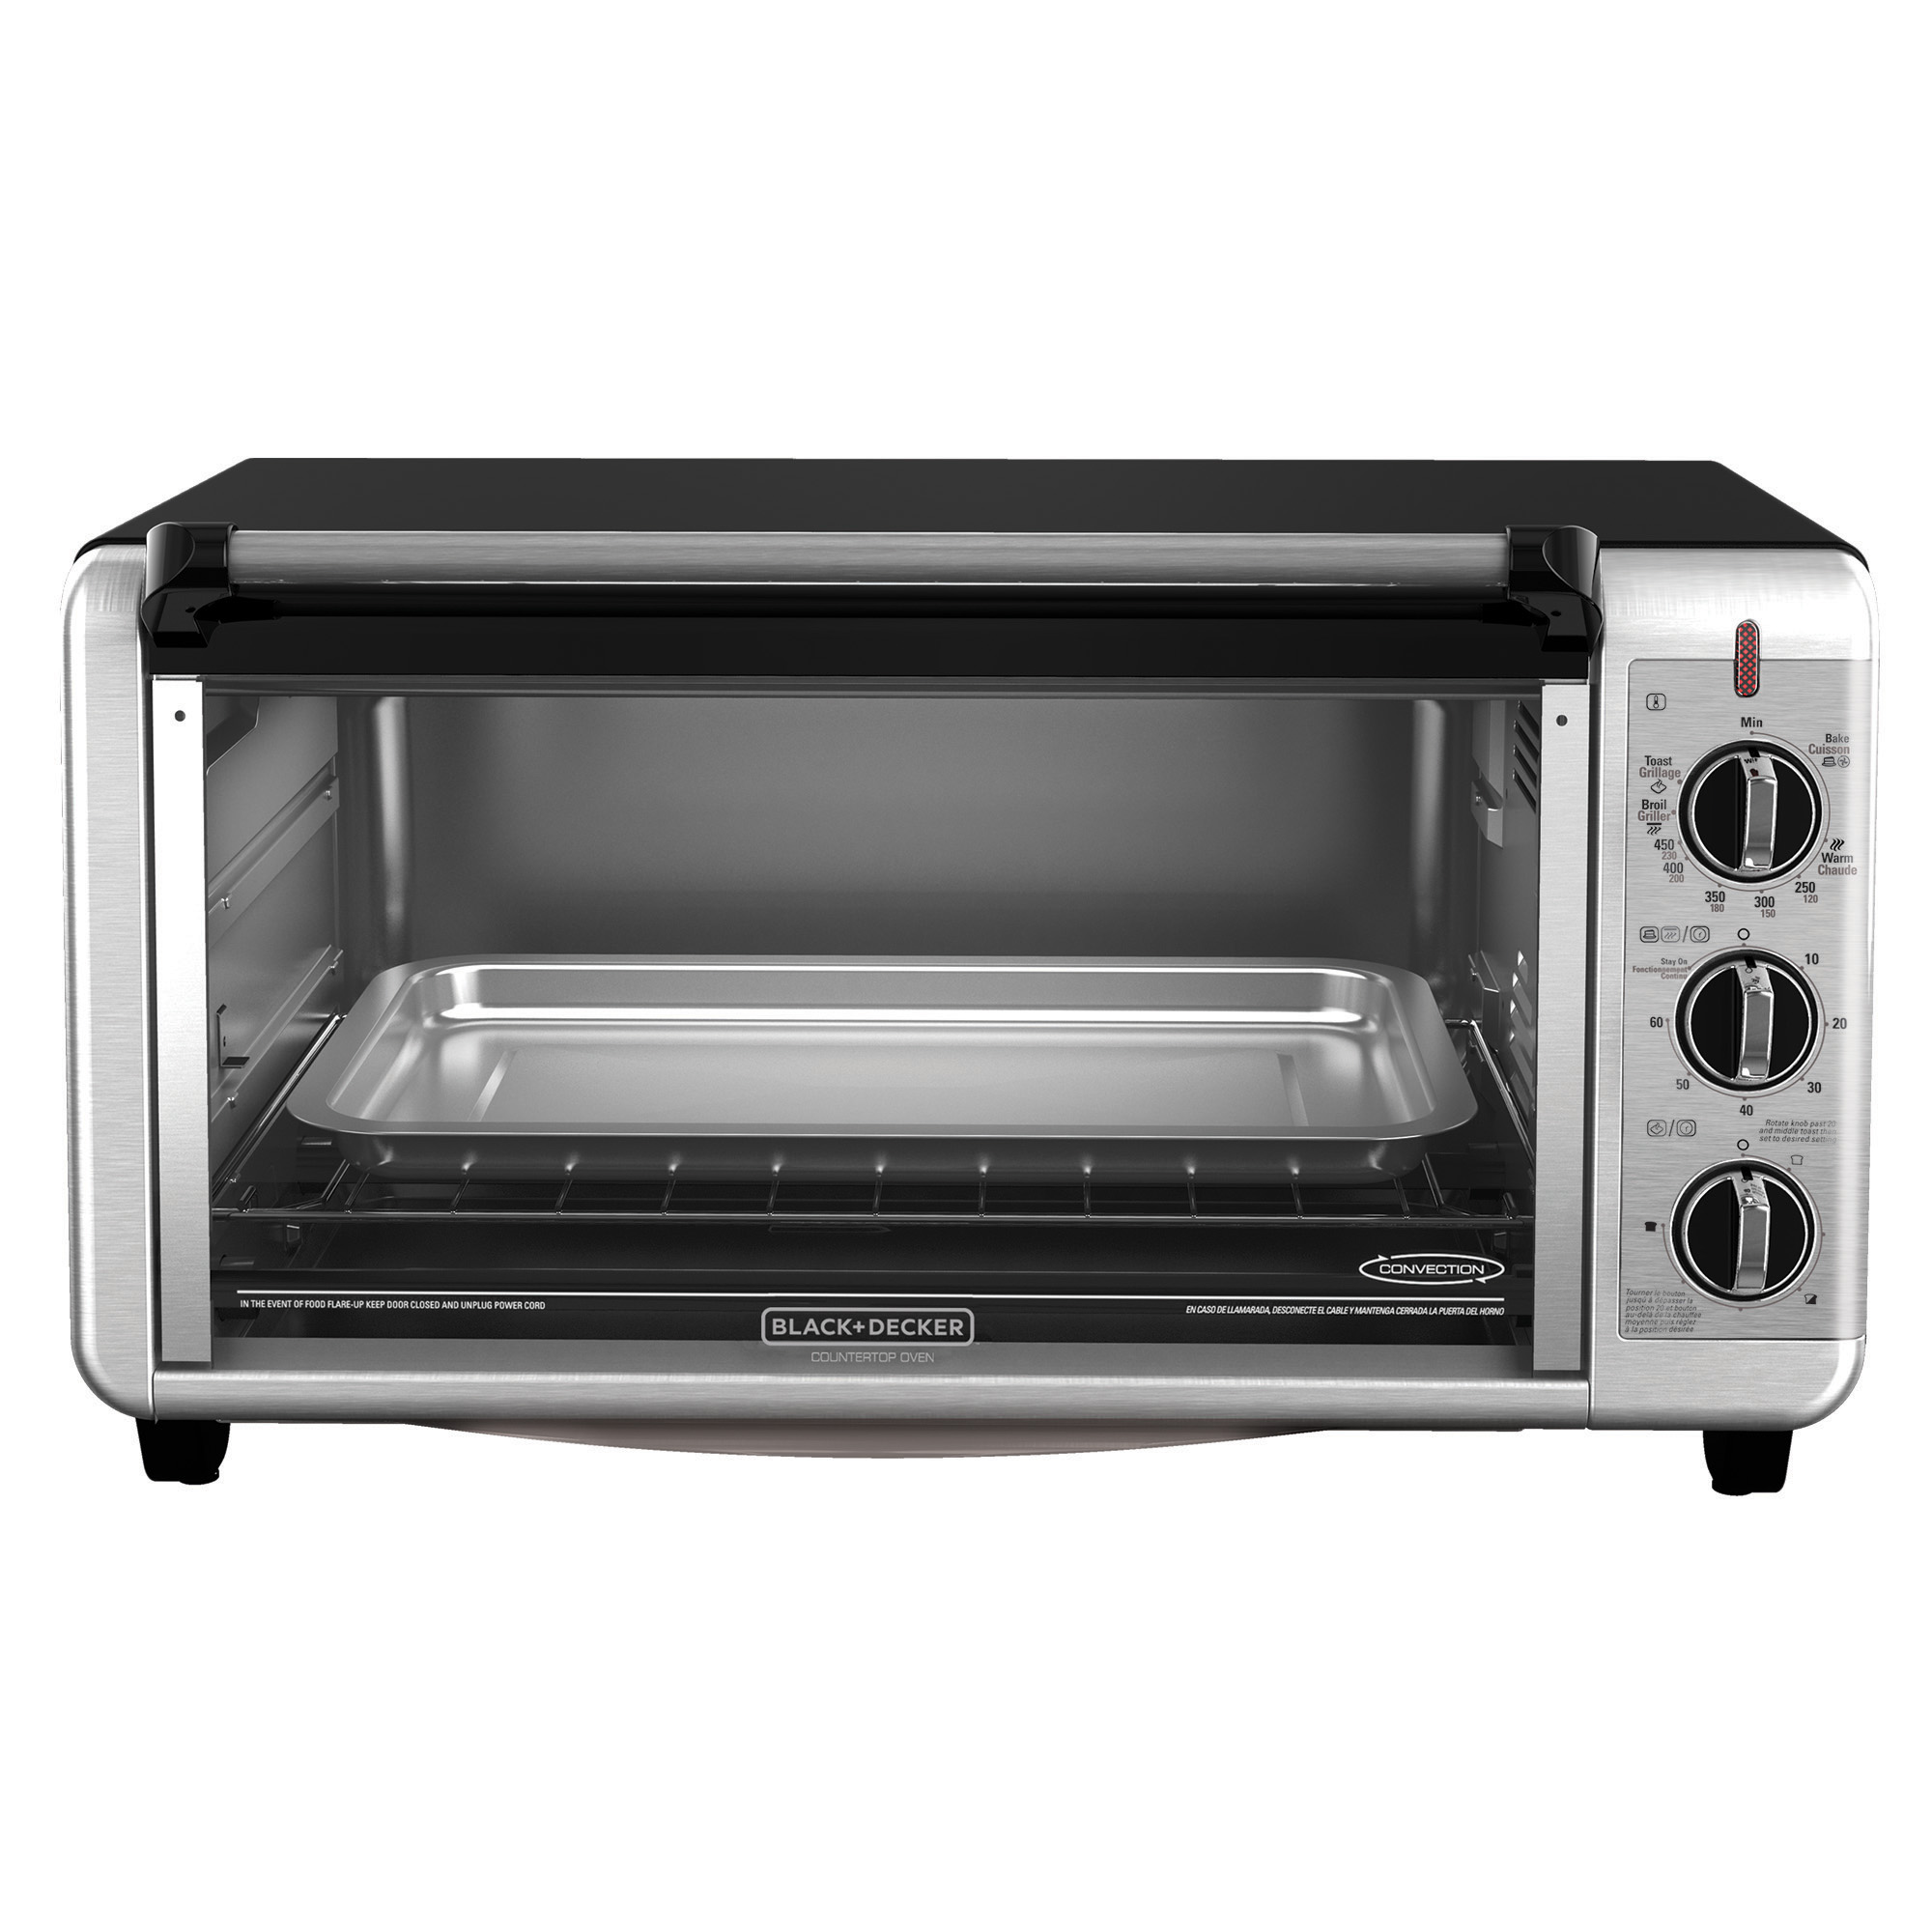 TO3260XSBDprd4_HR.ashx?h=412&la=en&mh=412&mw=430&w=412 convection and toaster ovens cooking appliances black decker black and decker toaster oven wiring diagram at webbmarketing.co